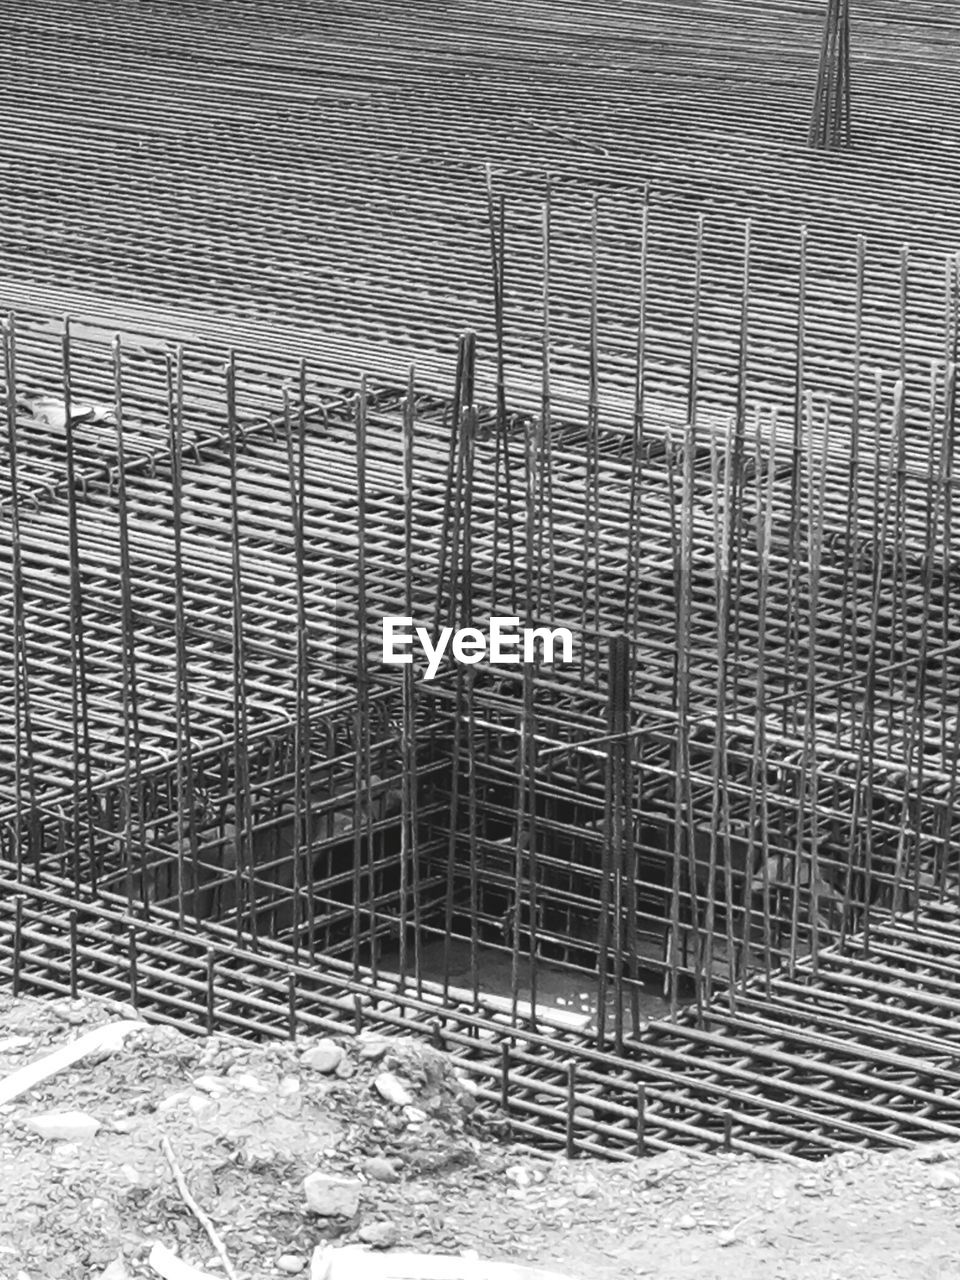 no people, architecture, day, built structure, metal, pattern, outdoors, full frame, barrier, construction site, fence, high angle view, boundary, grid, construction industry, industry, building exterior, protection, security, metal grate